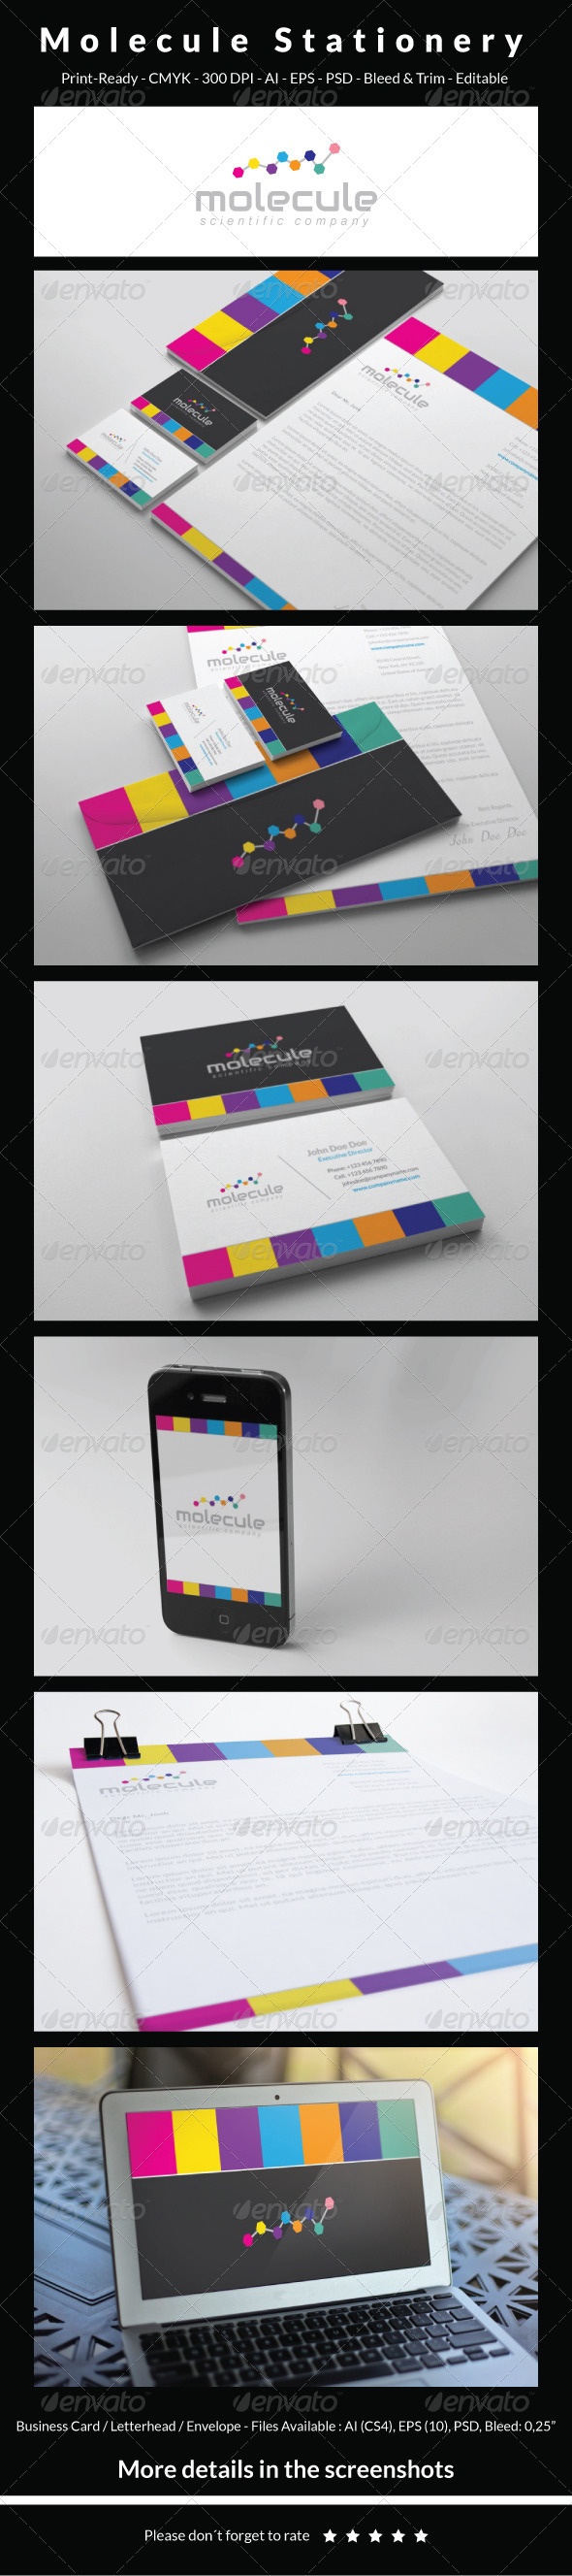 GraphicRiver Molecule Stationery 6200317